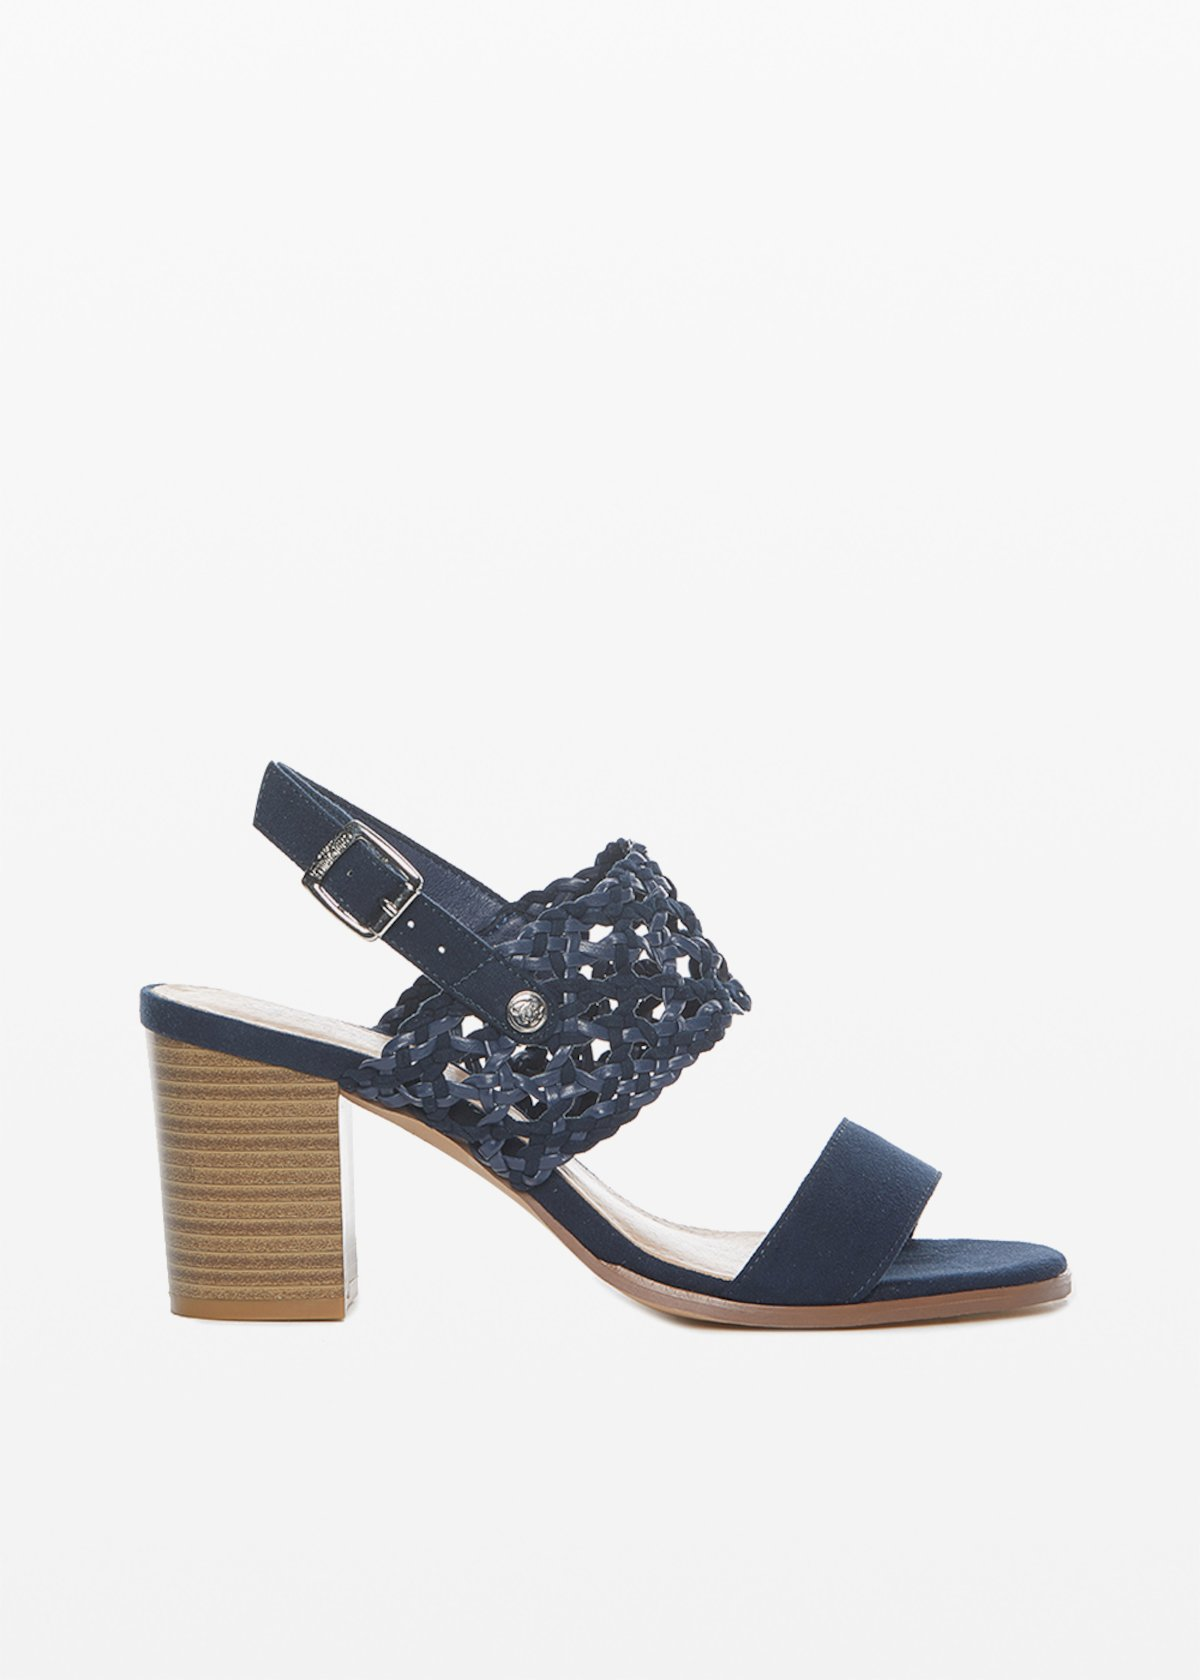 4bac4b88e Saily faux suede sandals with braided strip - Medium Blue - Woman -  Category image